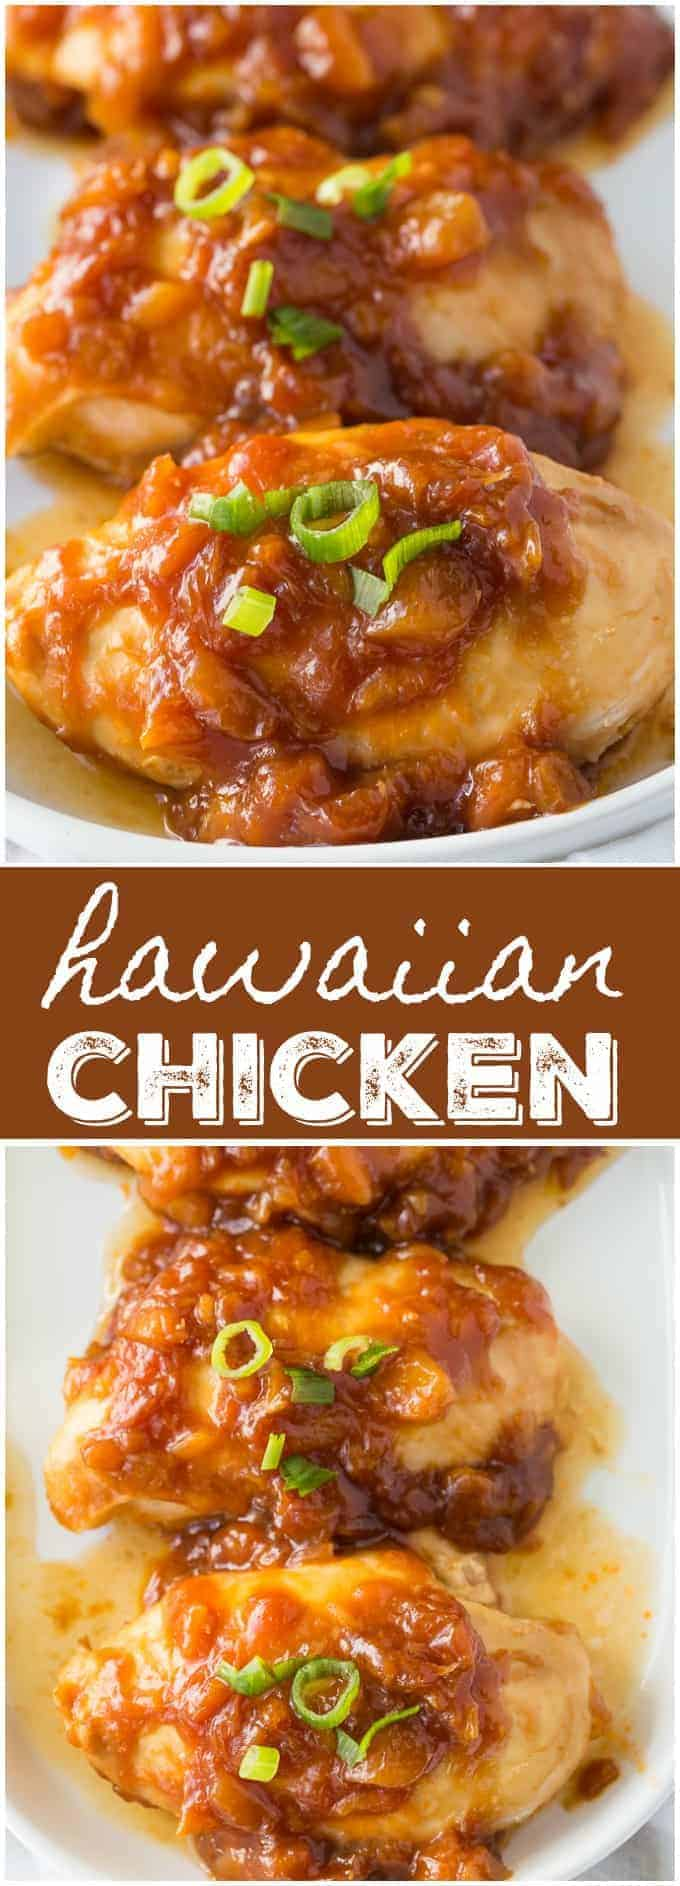 Hawaiian Chicken - Add a little tropical flavour to your weekday dinner! This dish is easy and delicious.